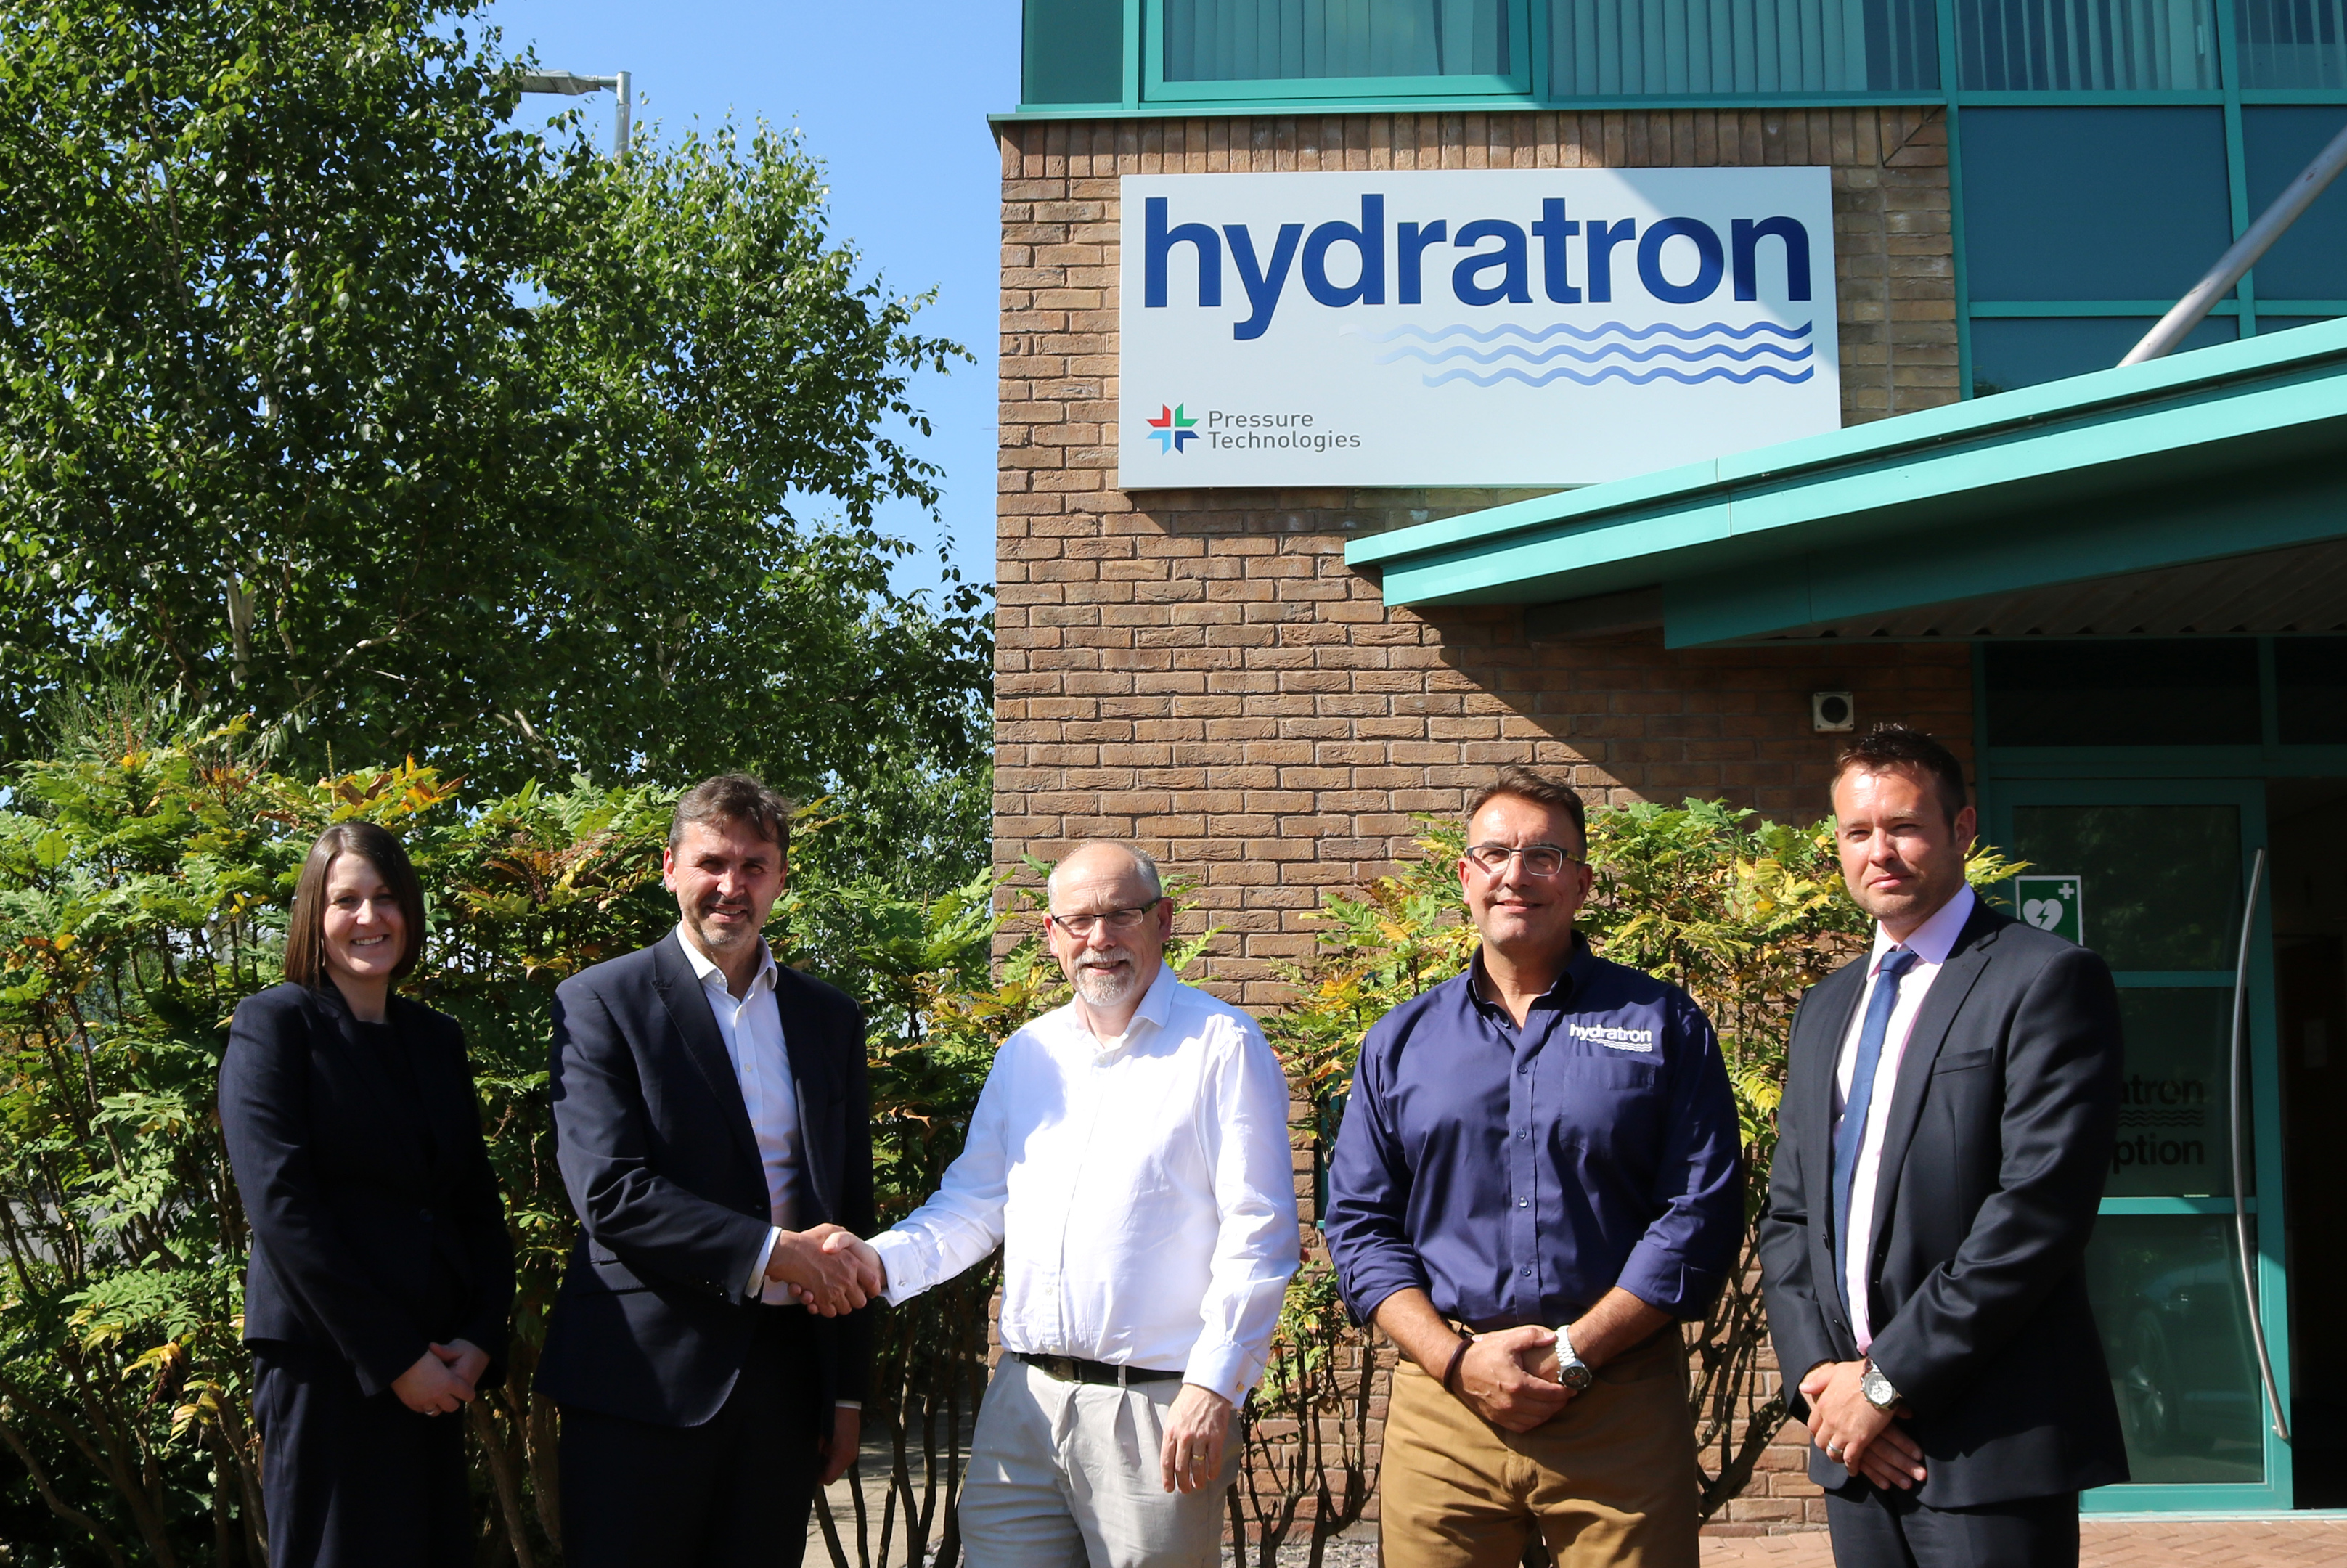 Picture (L-R): Kerrie Murray, Pryme Group CFO; Angus Gray, Pryme Group CEO; John Hayward, Pressure Technologies CEO; Findlay Beveridge, Hydratron commercial director; and, Murray Kerr, Pryme Group COO.